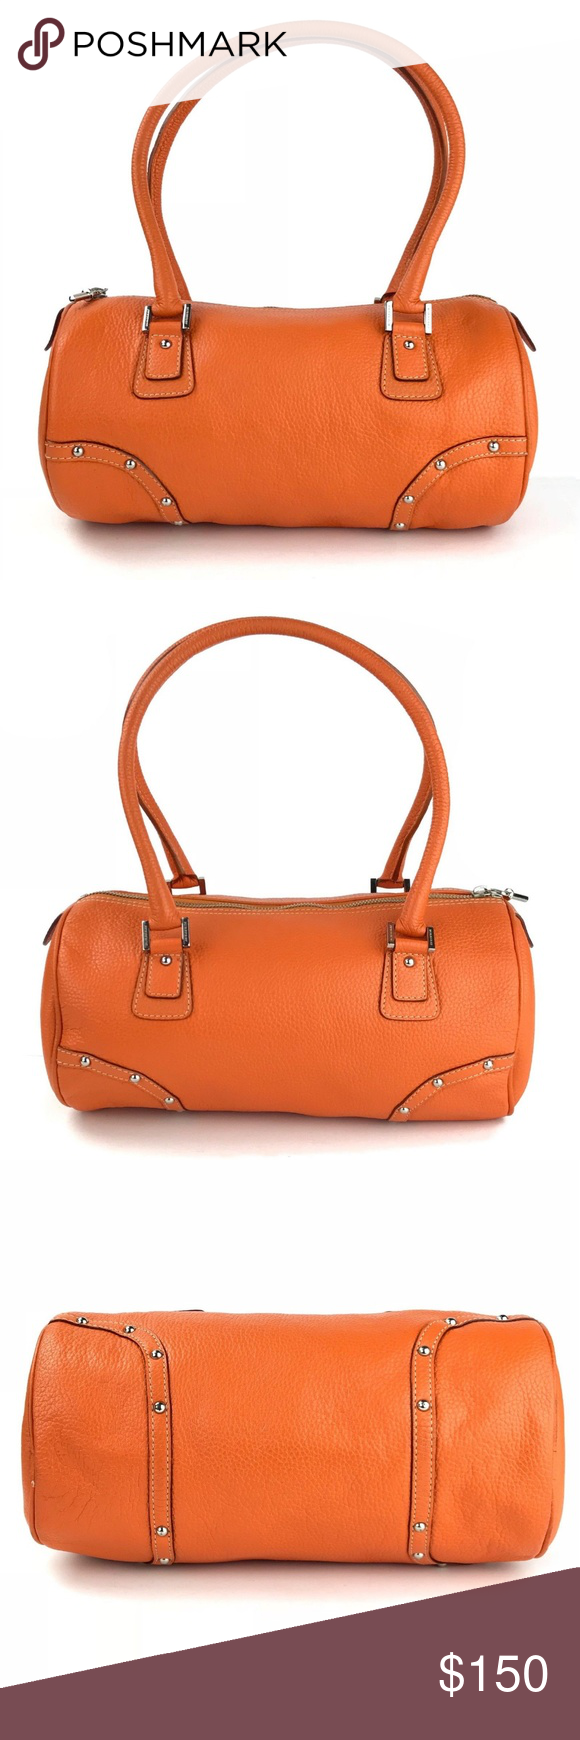 Burberry Orange Pebbled Leather Barrel Satchel This listing features an  authentic Burberry satchel in good pre-owned condition Measurements Size   6